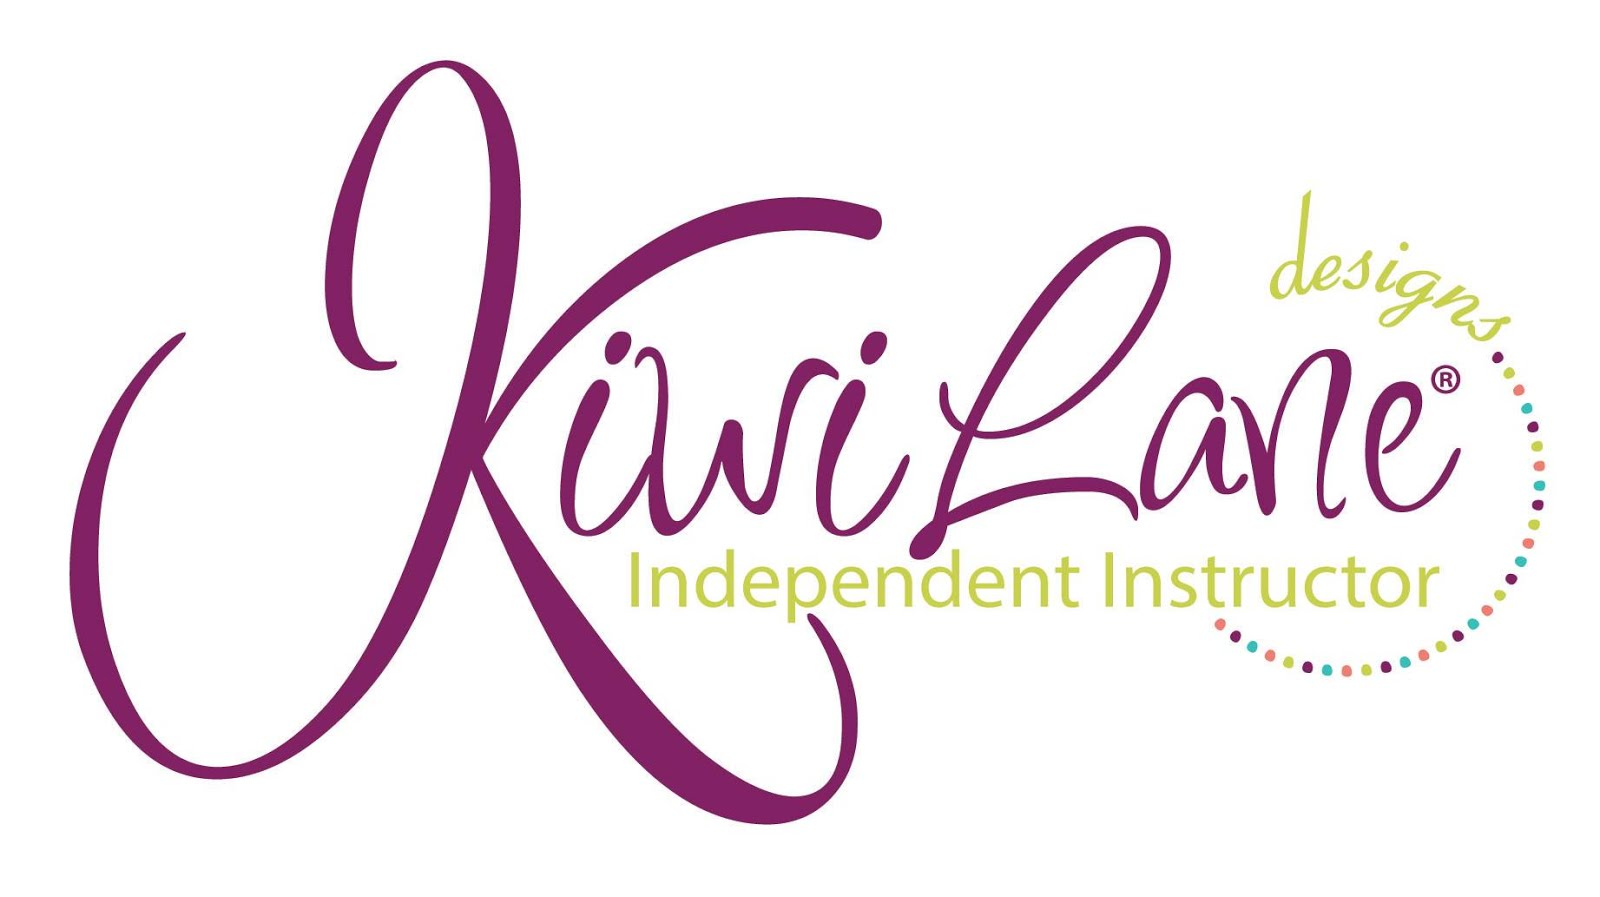 Kiwi Lane Independent Instructor/ Facebook Page